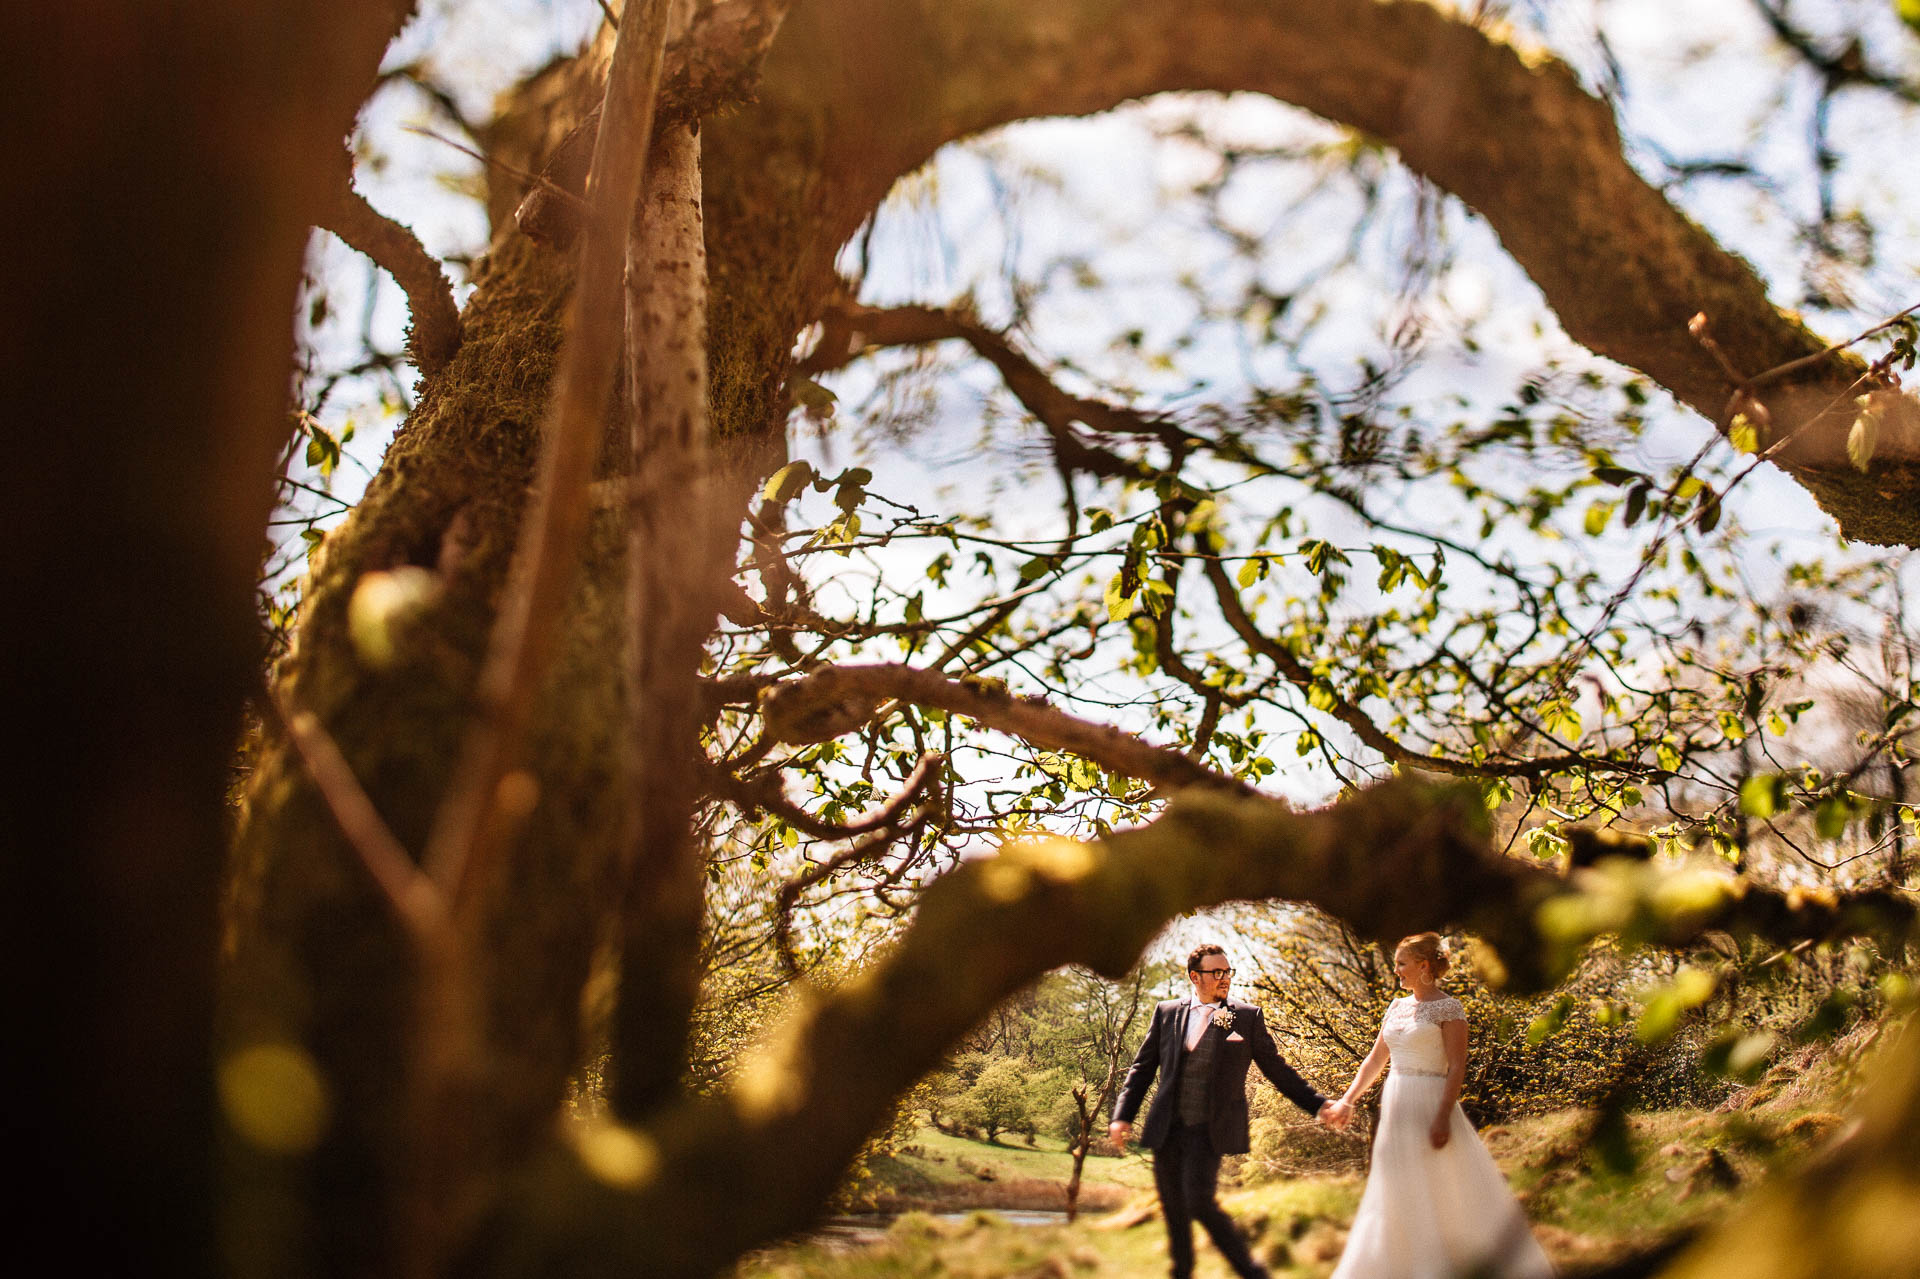 The Wild Boar Wedding Photography - EM - wide shot of couple through trees